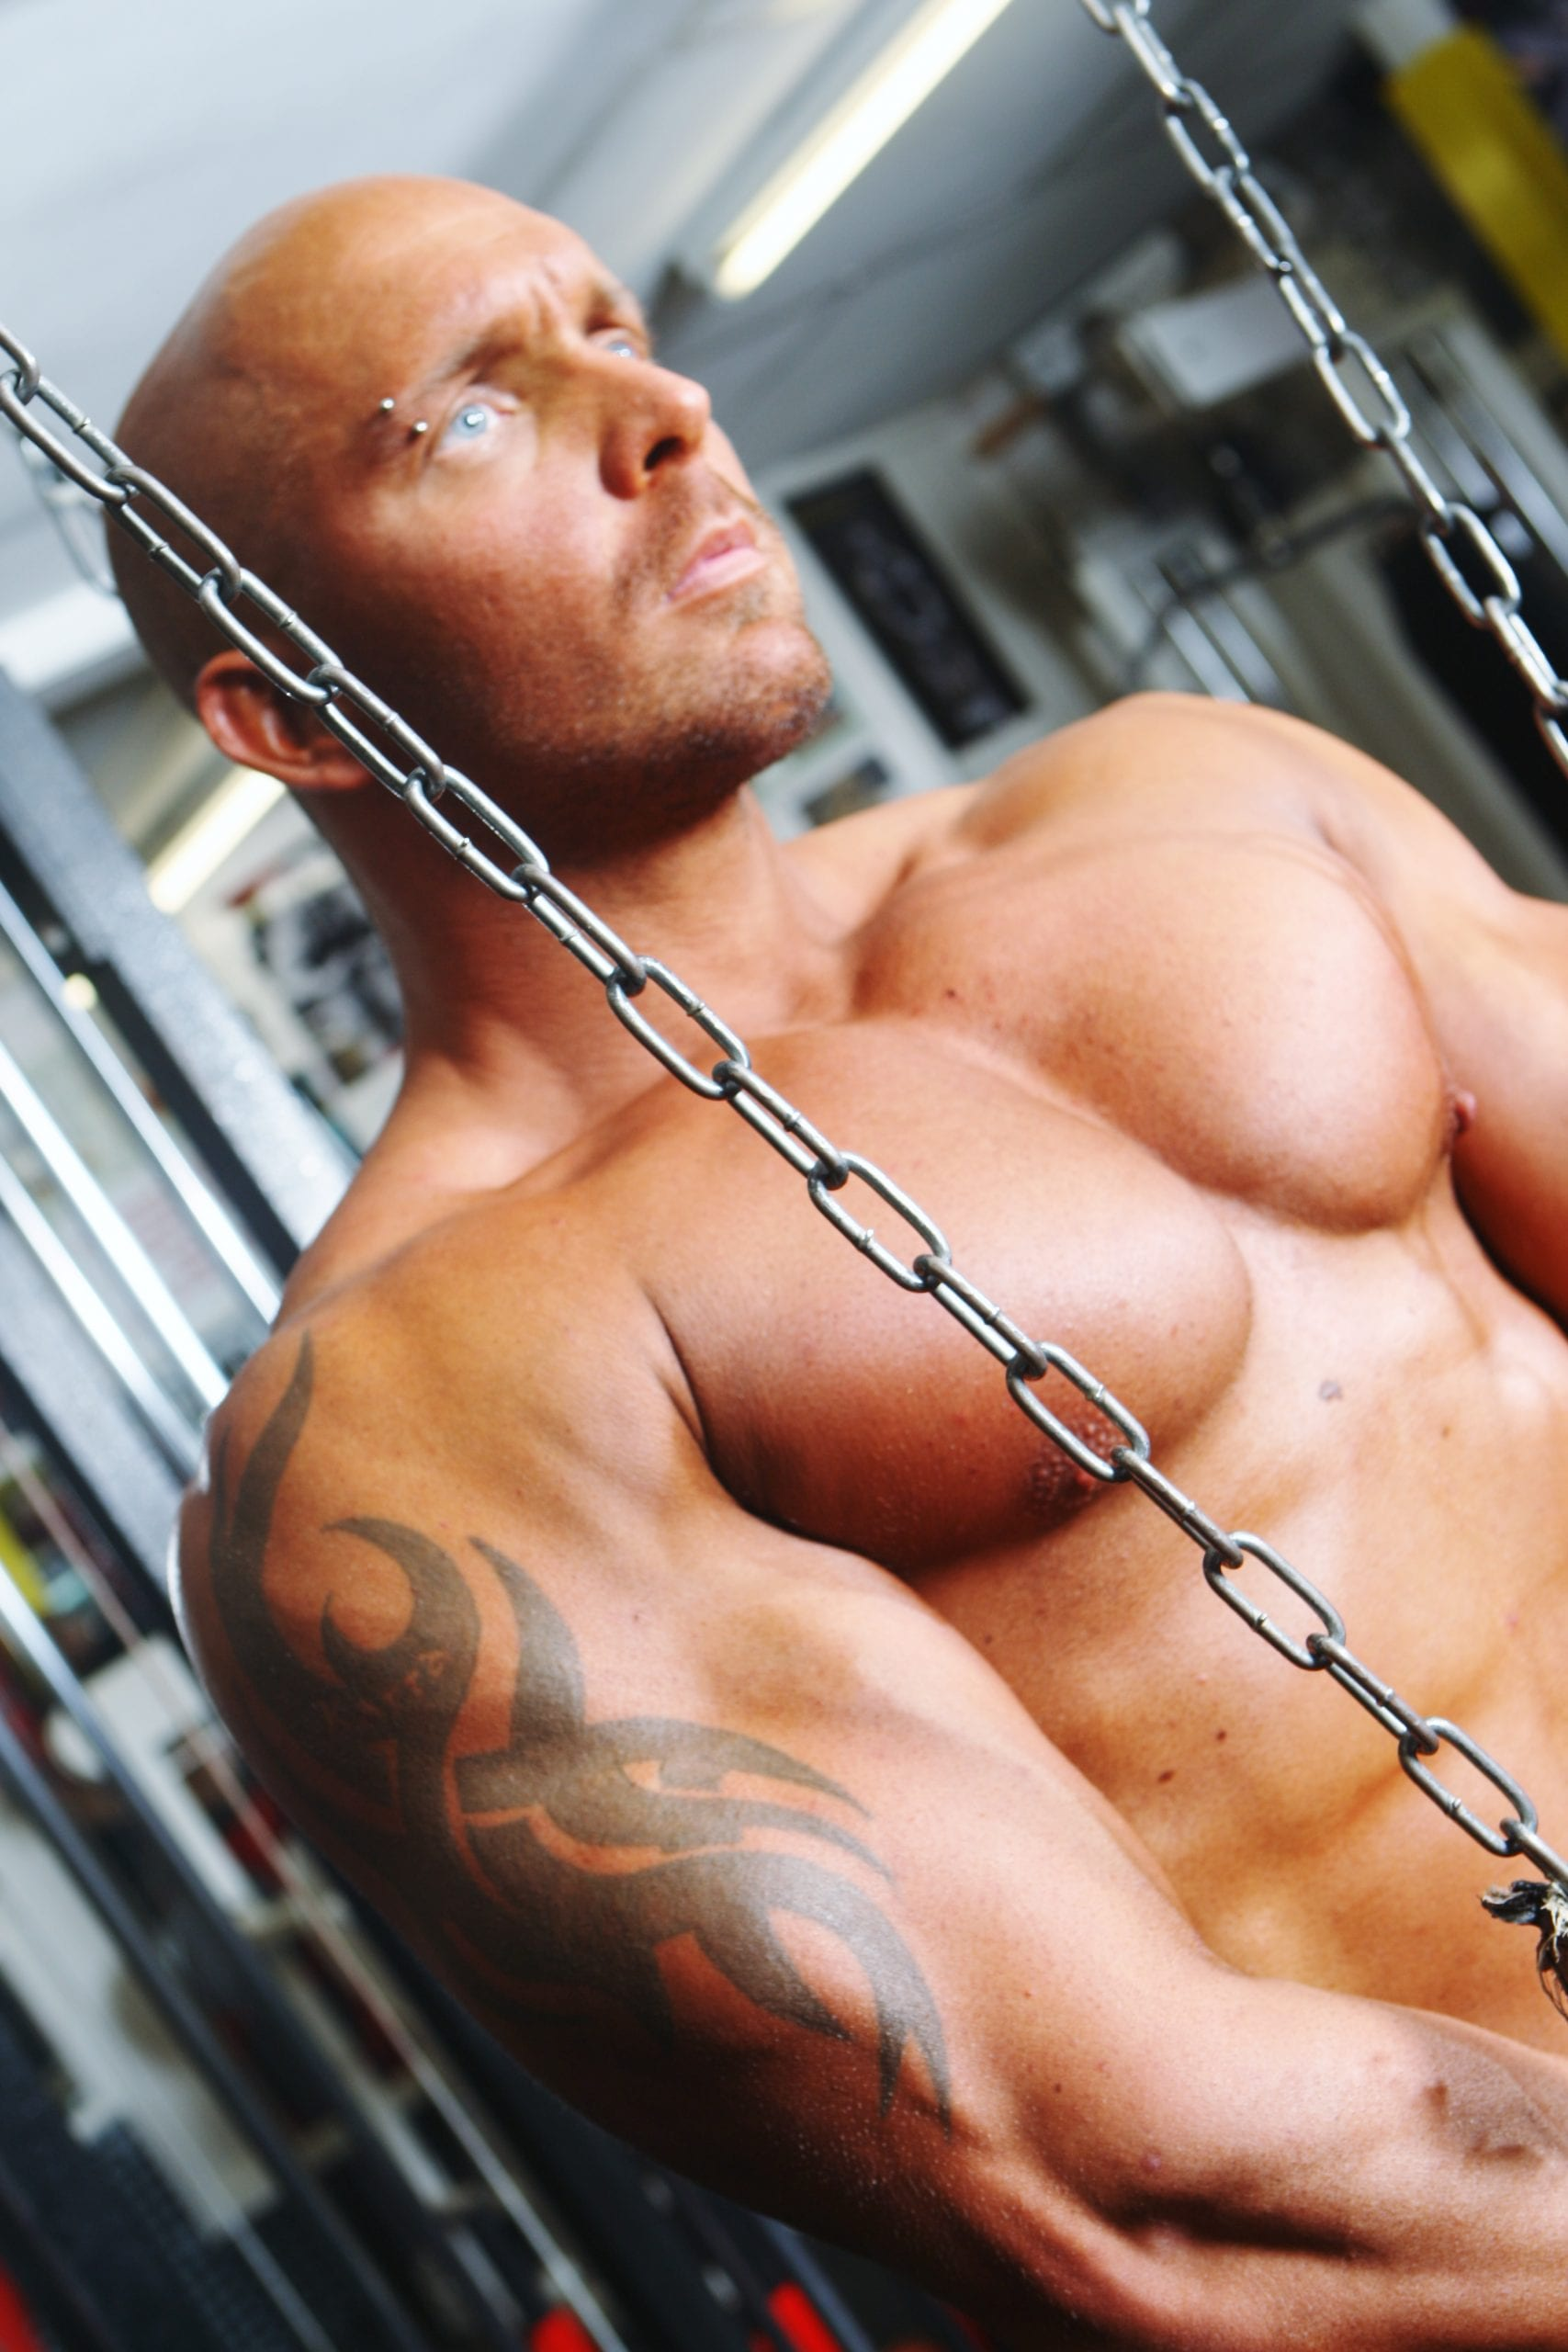 Bodybuilding Movies To Watch Out For in 2013